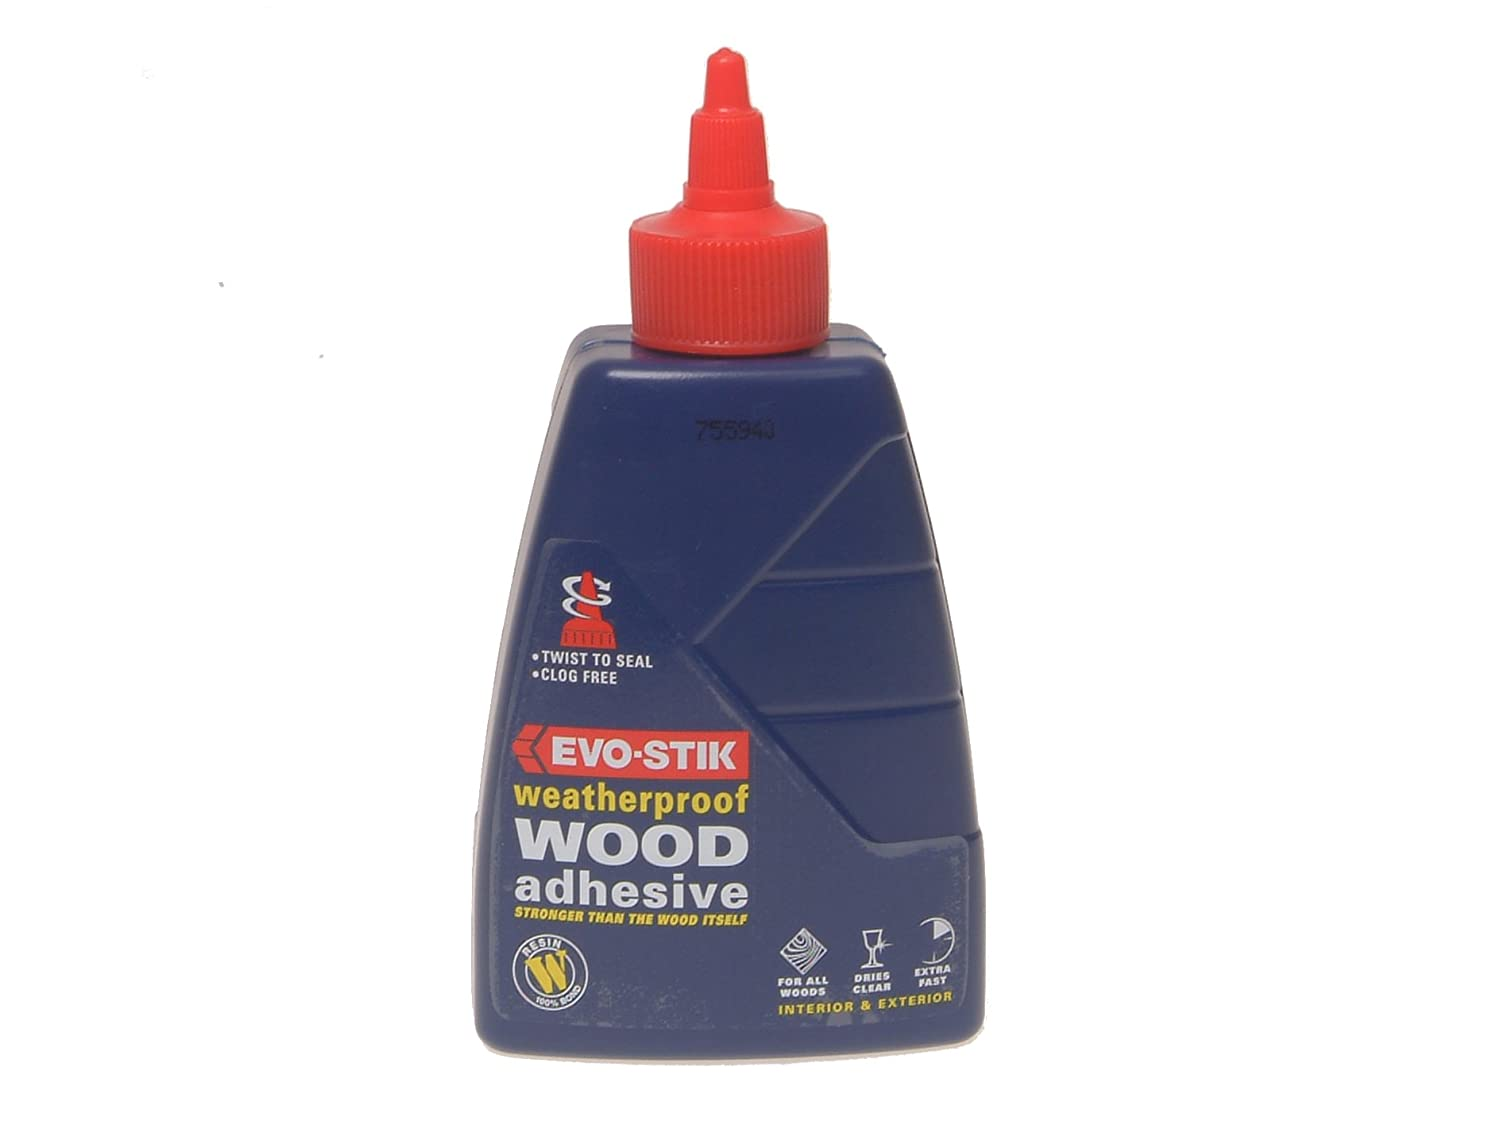 Evo Stik Wood Adhesive Weatherproof - 2.5litre 718210 EVOWP212L B0001P03XI Adhesives Adhesives and Fillers Fixings and Hardware Items Weatherproof Adhesive Wood Adhesives